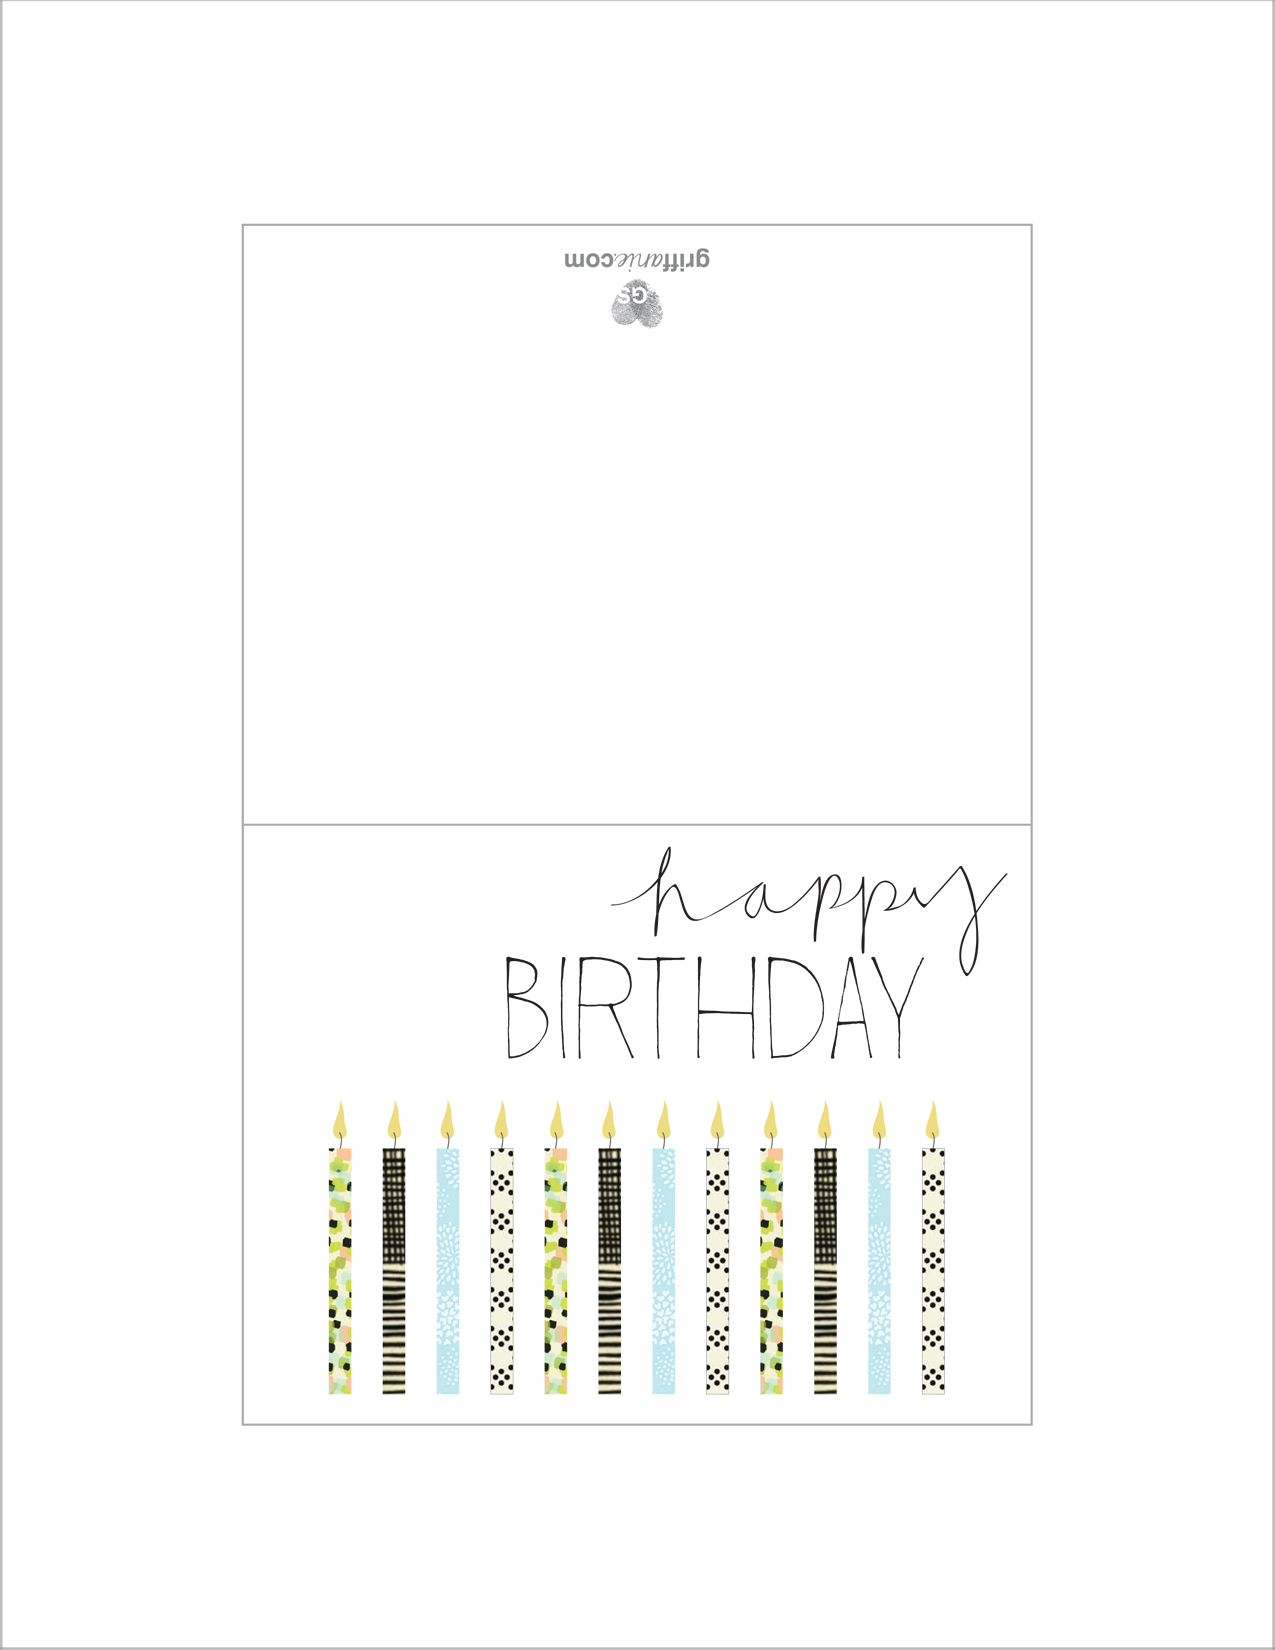 It's just a picture of Witty Foldable Printable Birthday Card